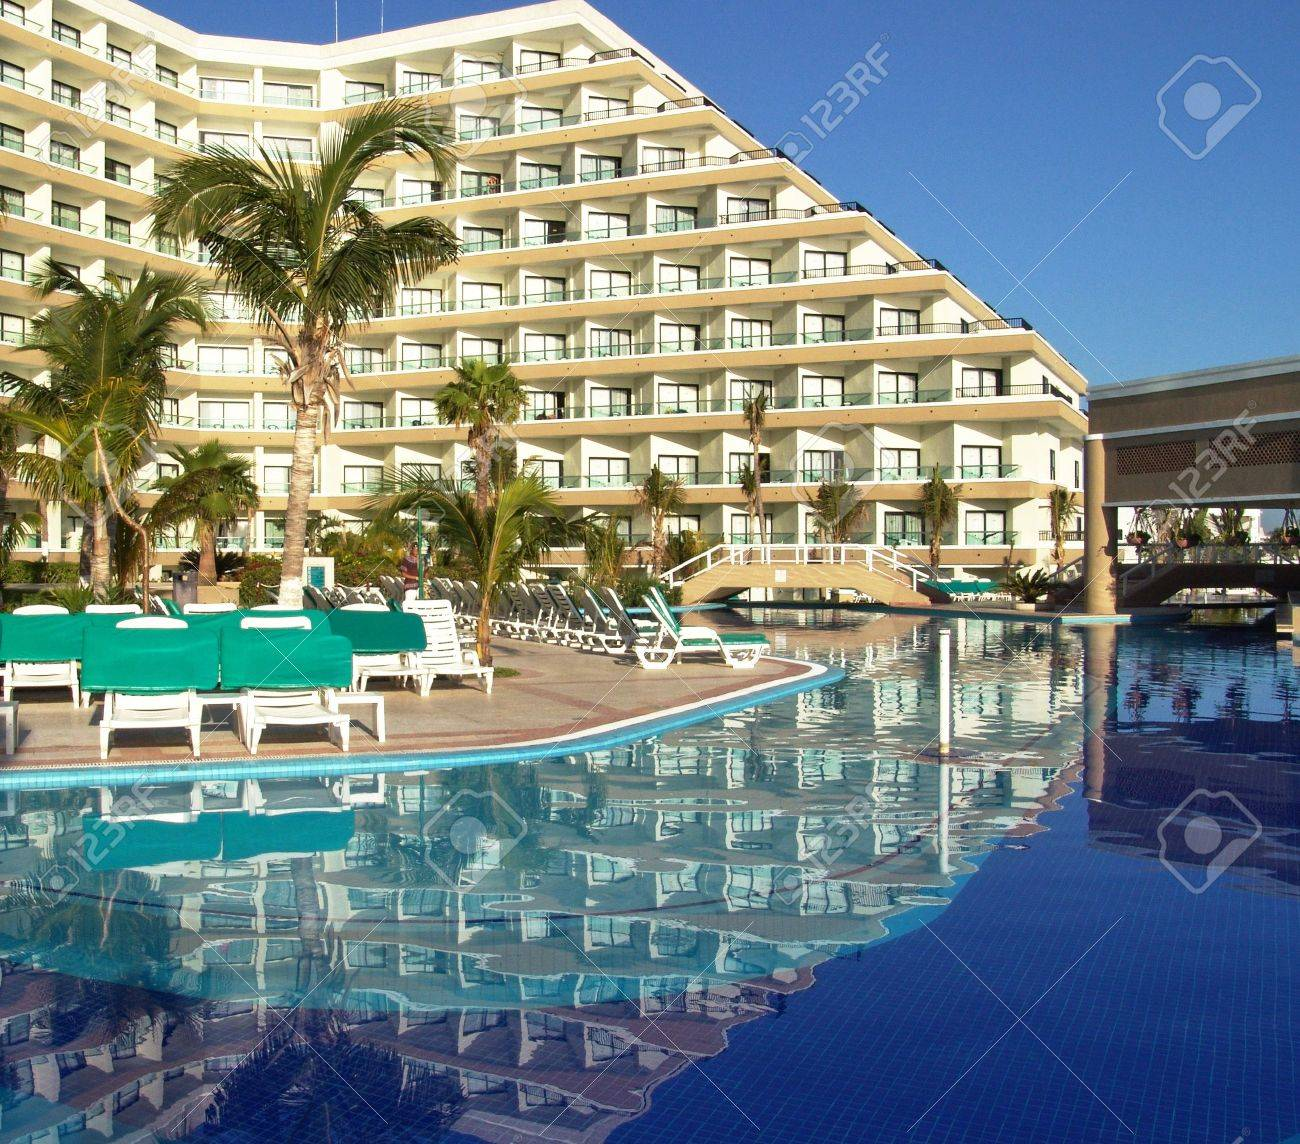 luxury resort hotel with swimming pool, cancun, mexico. stock